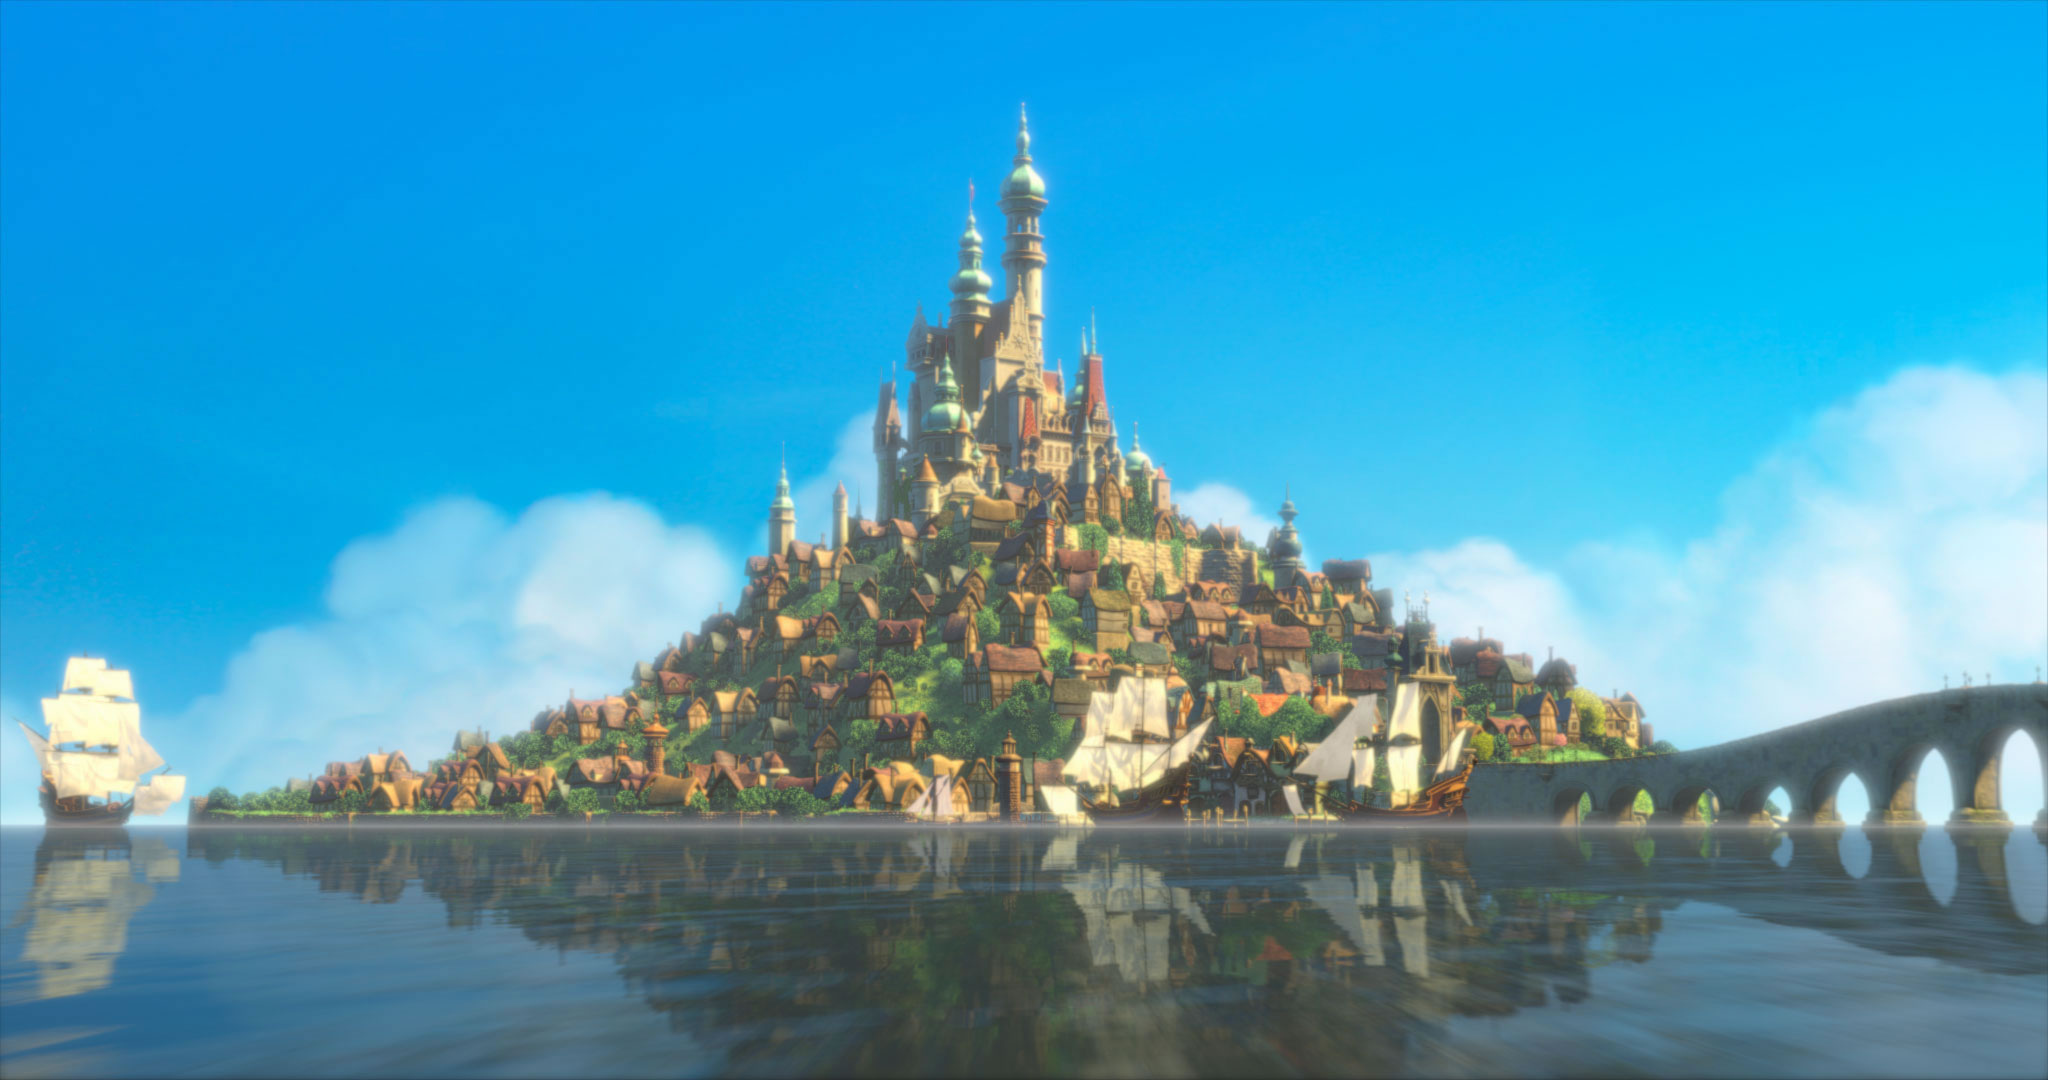 WHOA: This French monastery looks exactly like Rapunzel's castle from 'Tangled'